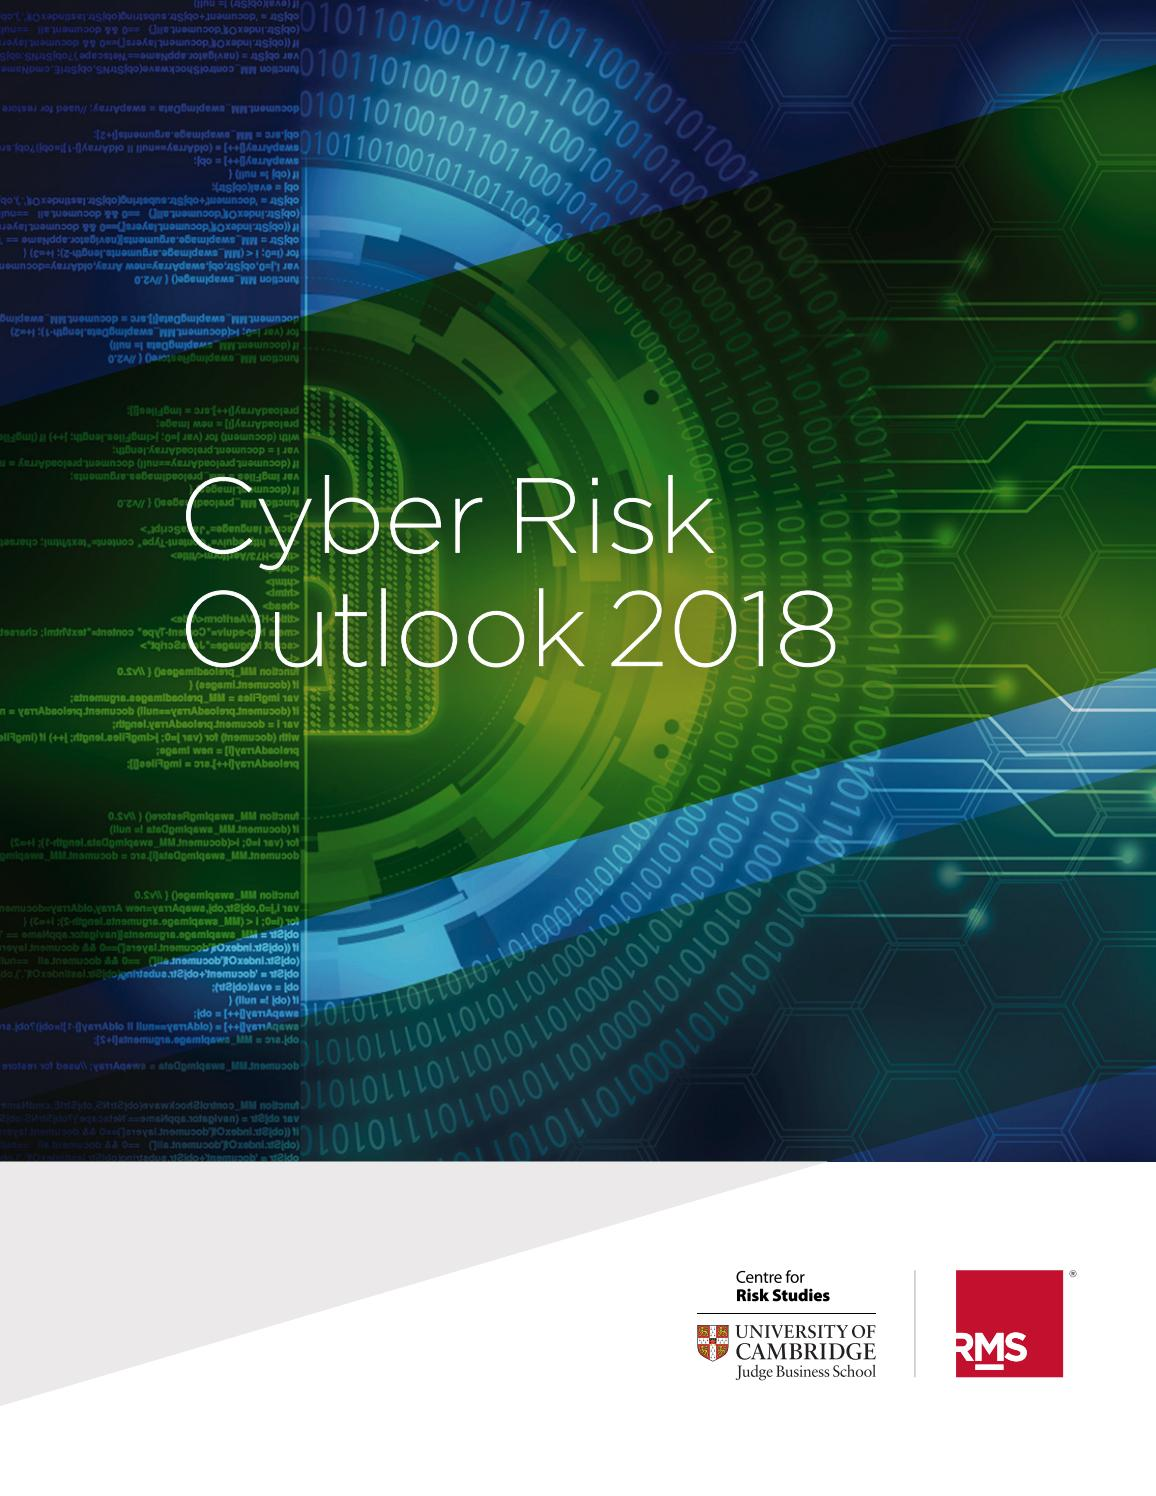 Cyber Risk Outlook 2018 by Cambridge Judge Business School